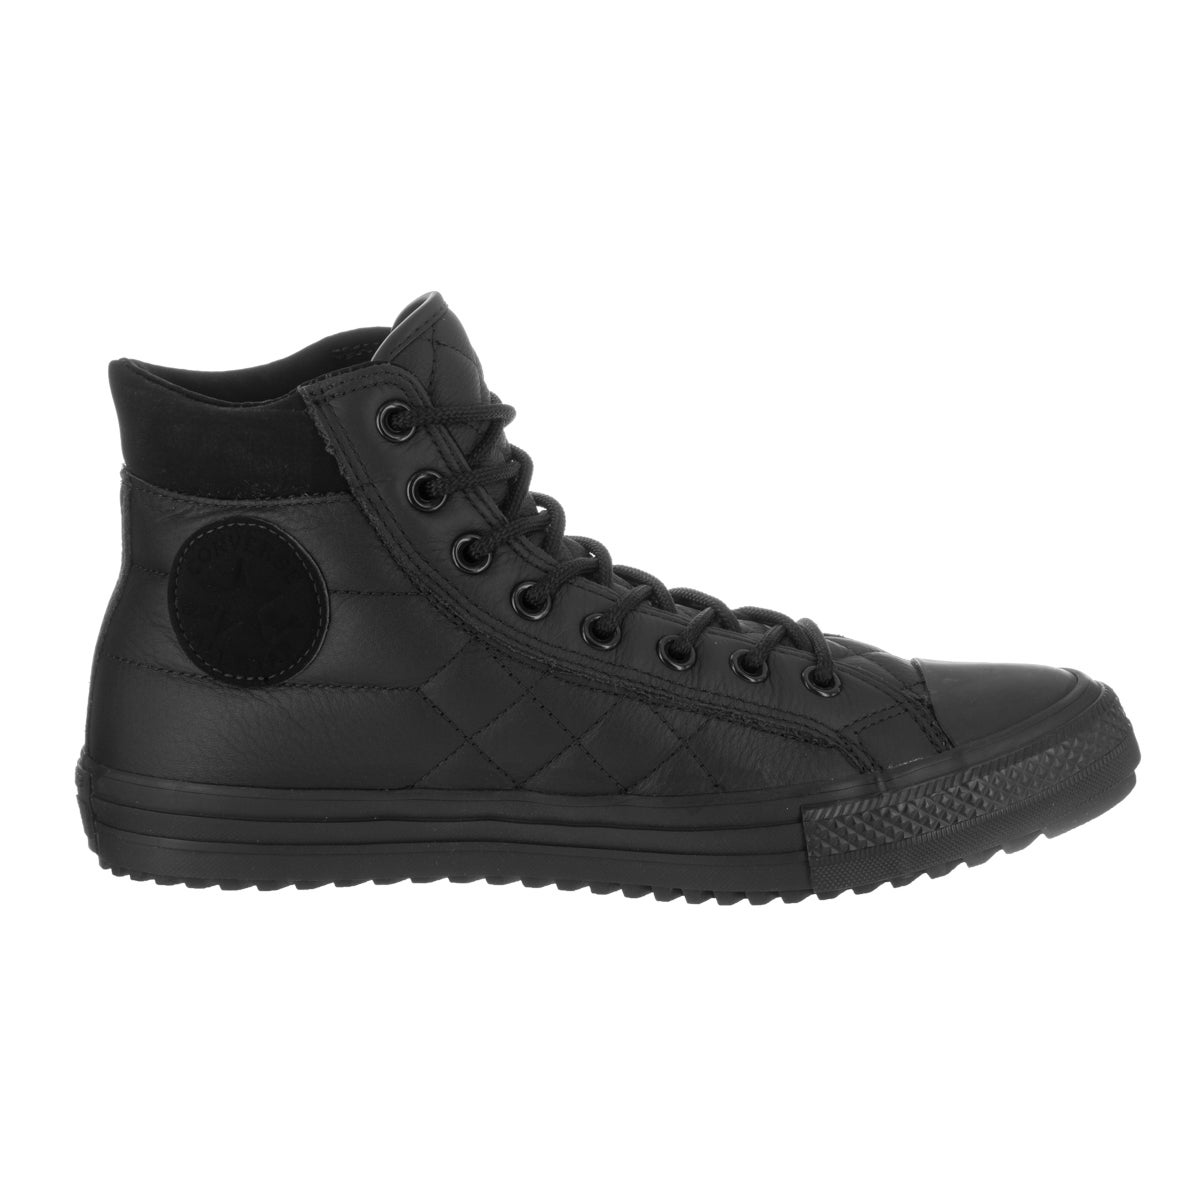 f4642ea59cea Shop Converse Unisex Chuck Taylor All Star Boot Pc Hi Black Leather Casual  Shoes - Free Shipping Today - Overstock - 14458000